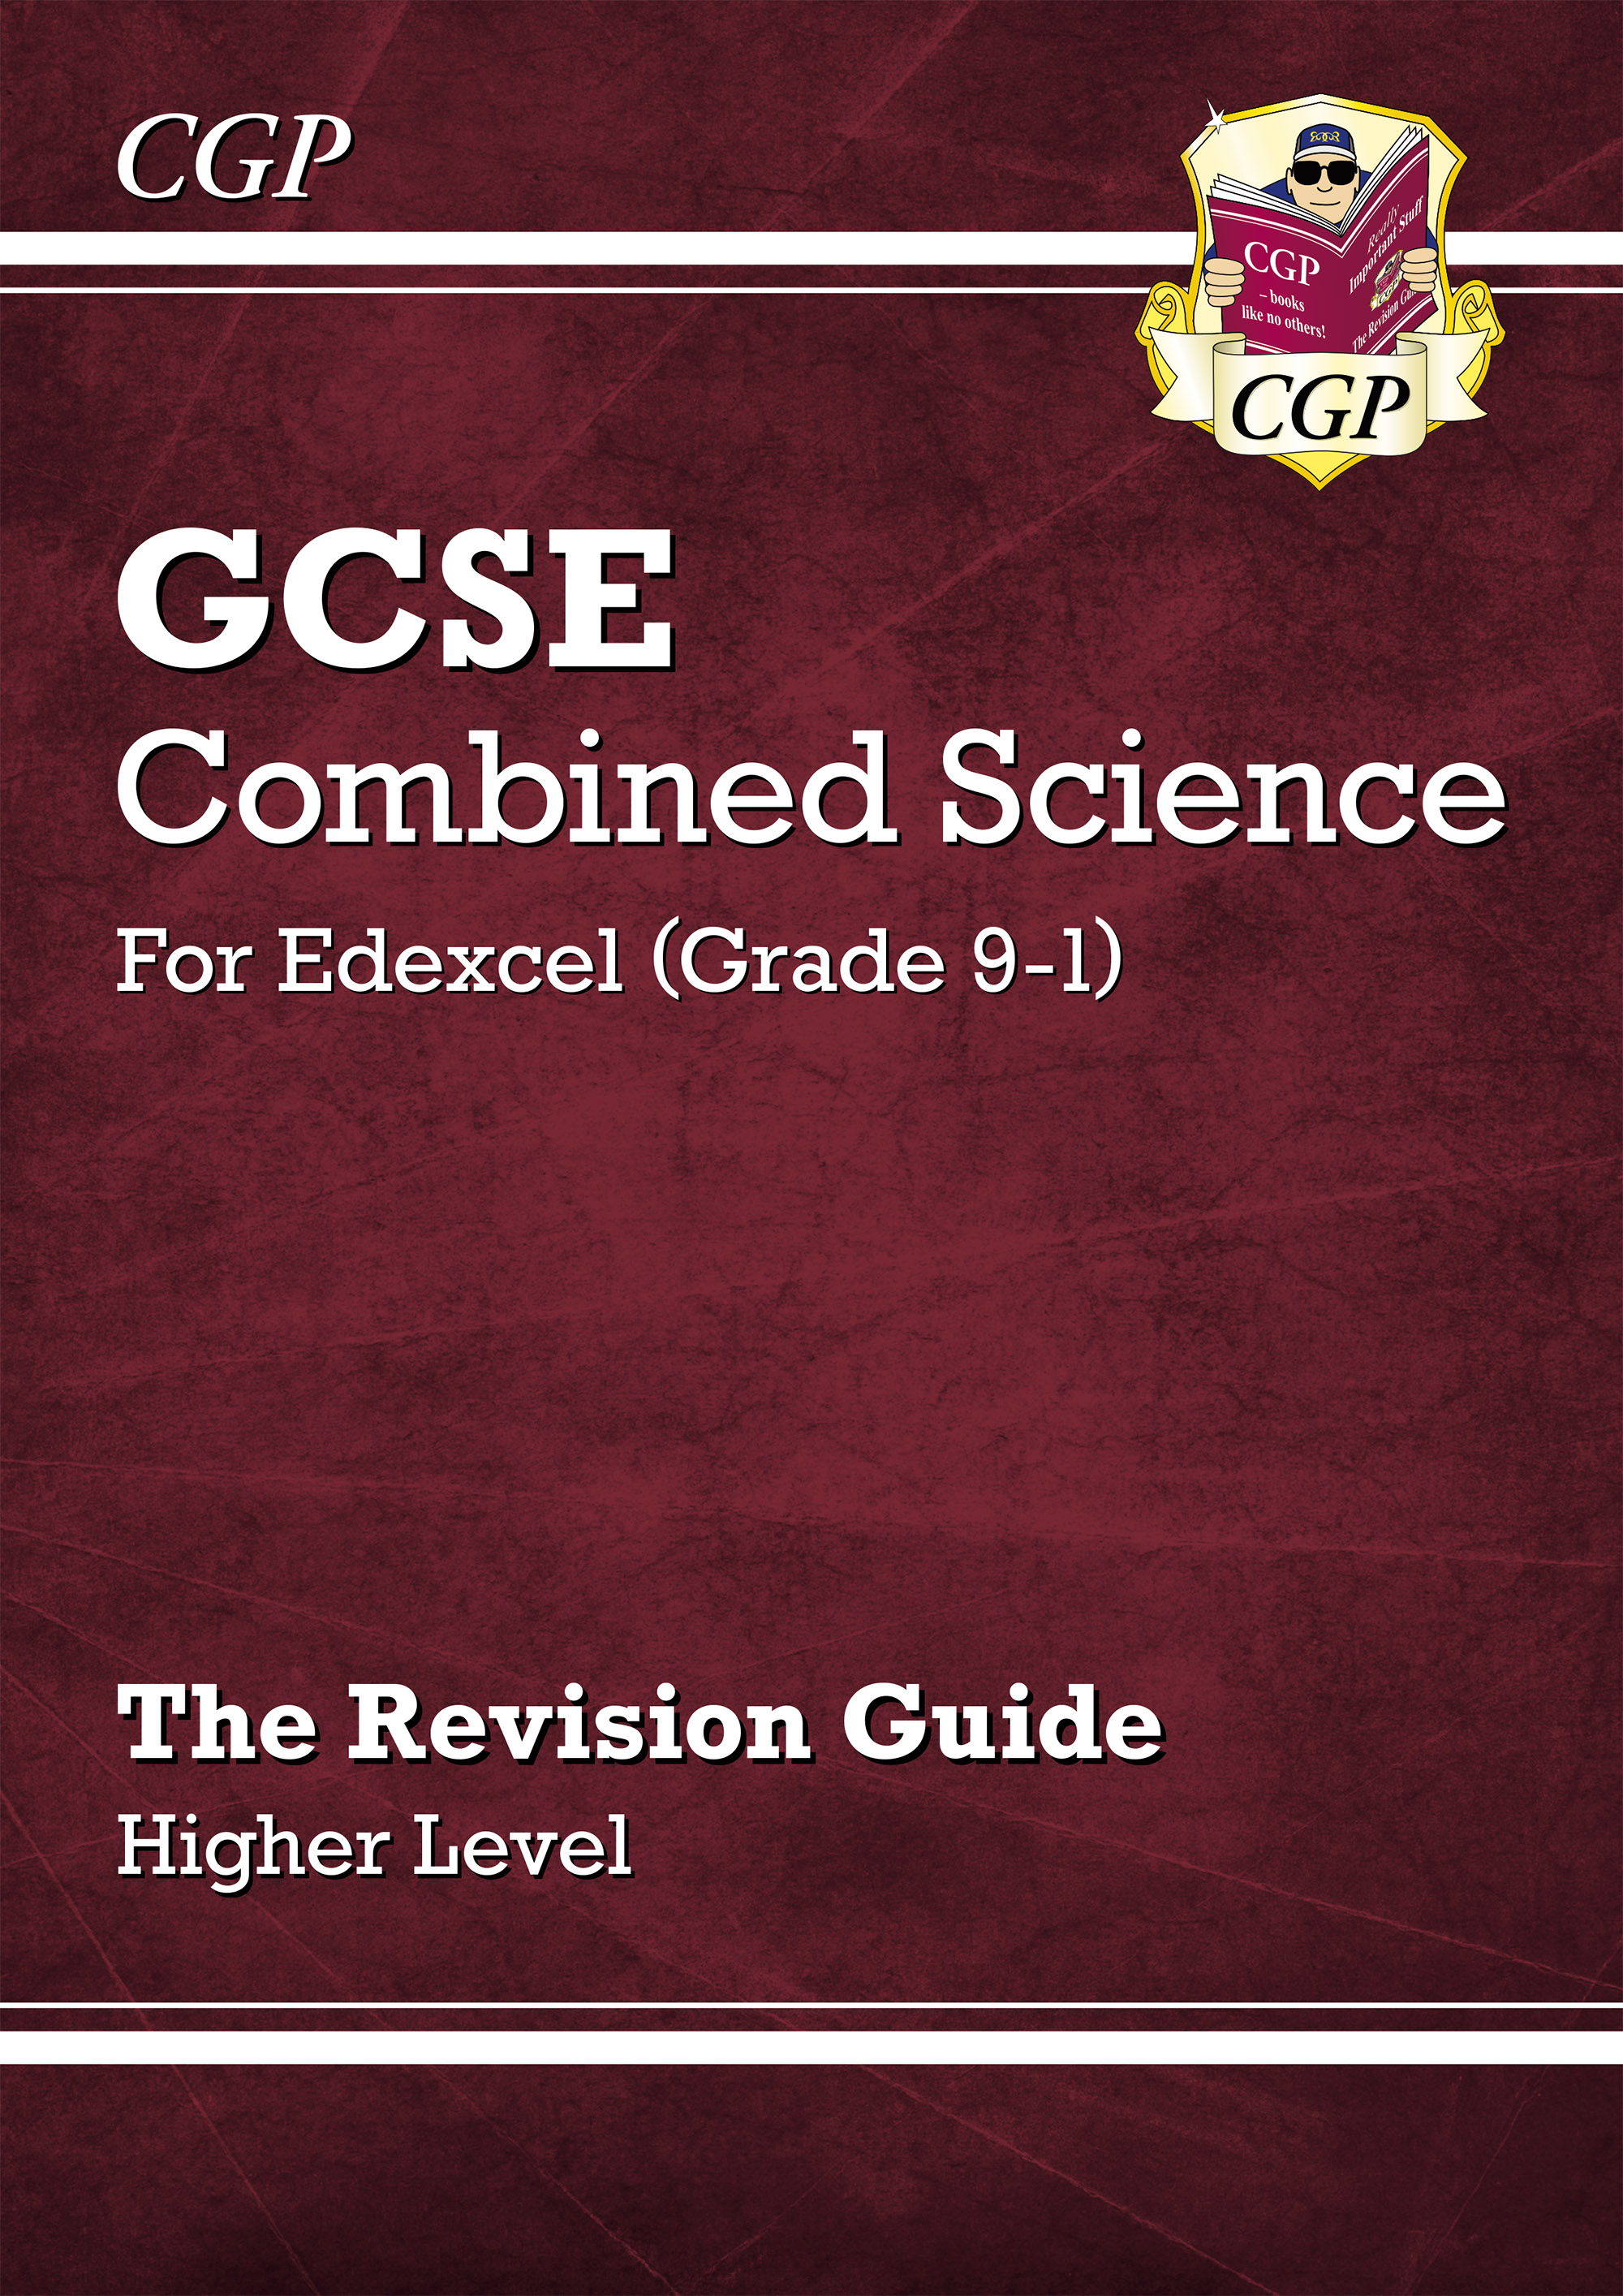 SEHR45D - Grade 9-1 GCSE Combined Science: Edexcel Revision Guide - Higher (Online Edition)